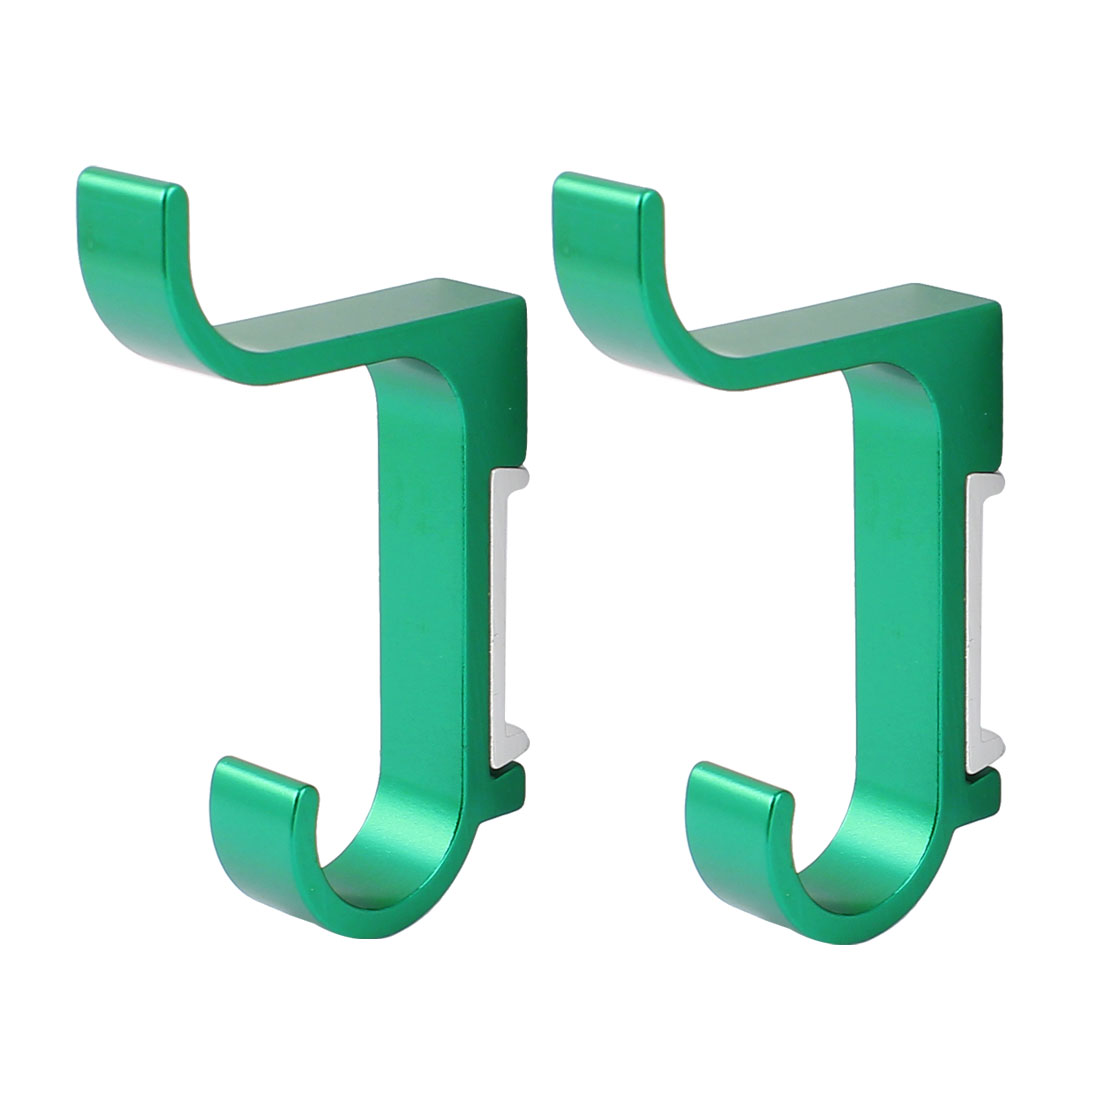 Bathroom Clothes Bath Towel Wall Mount Aluminum Hanging Hook Hanger 2 Pcs Green